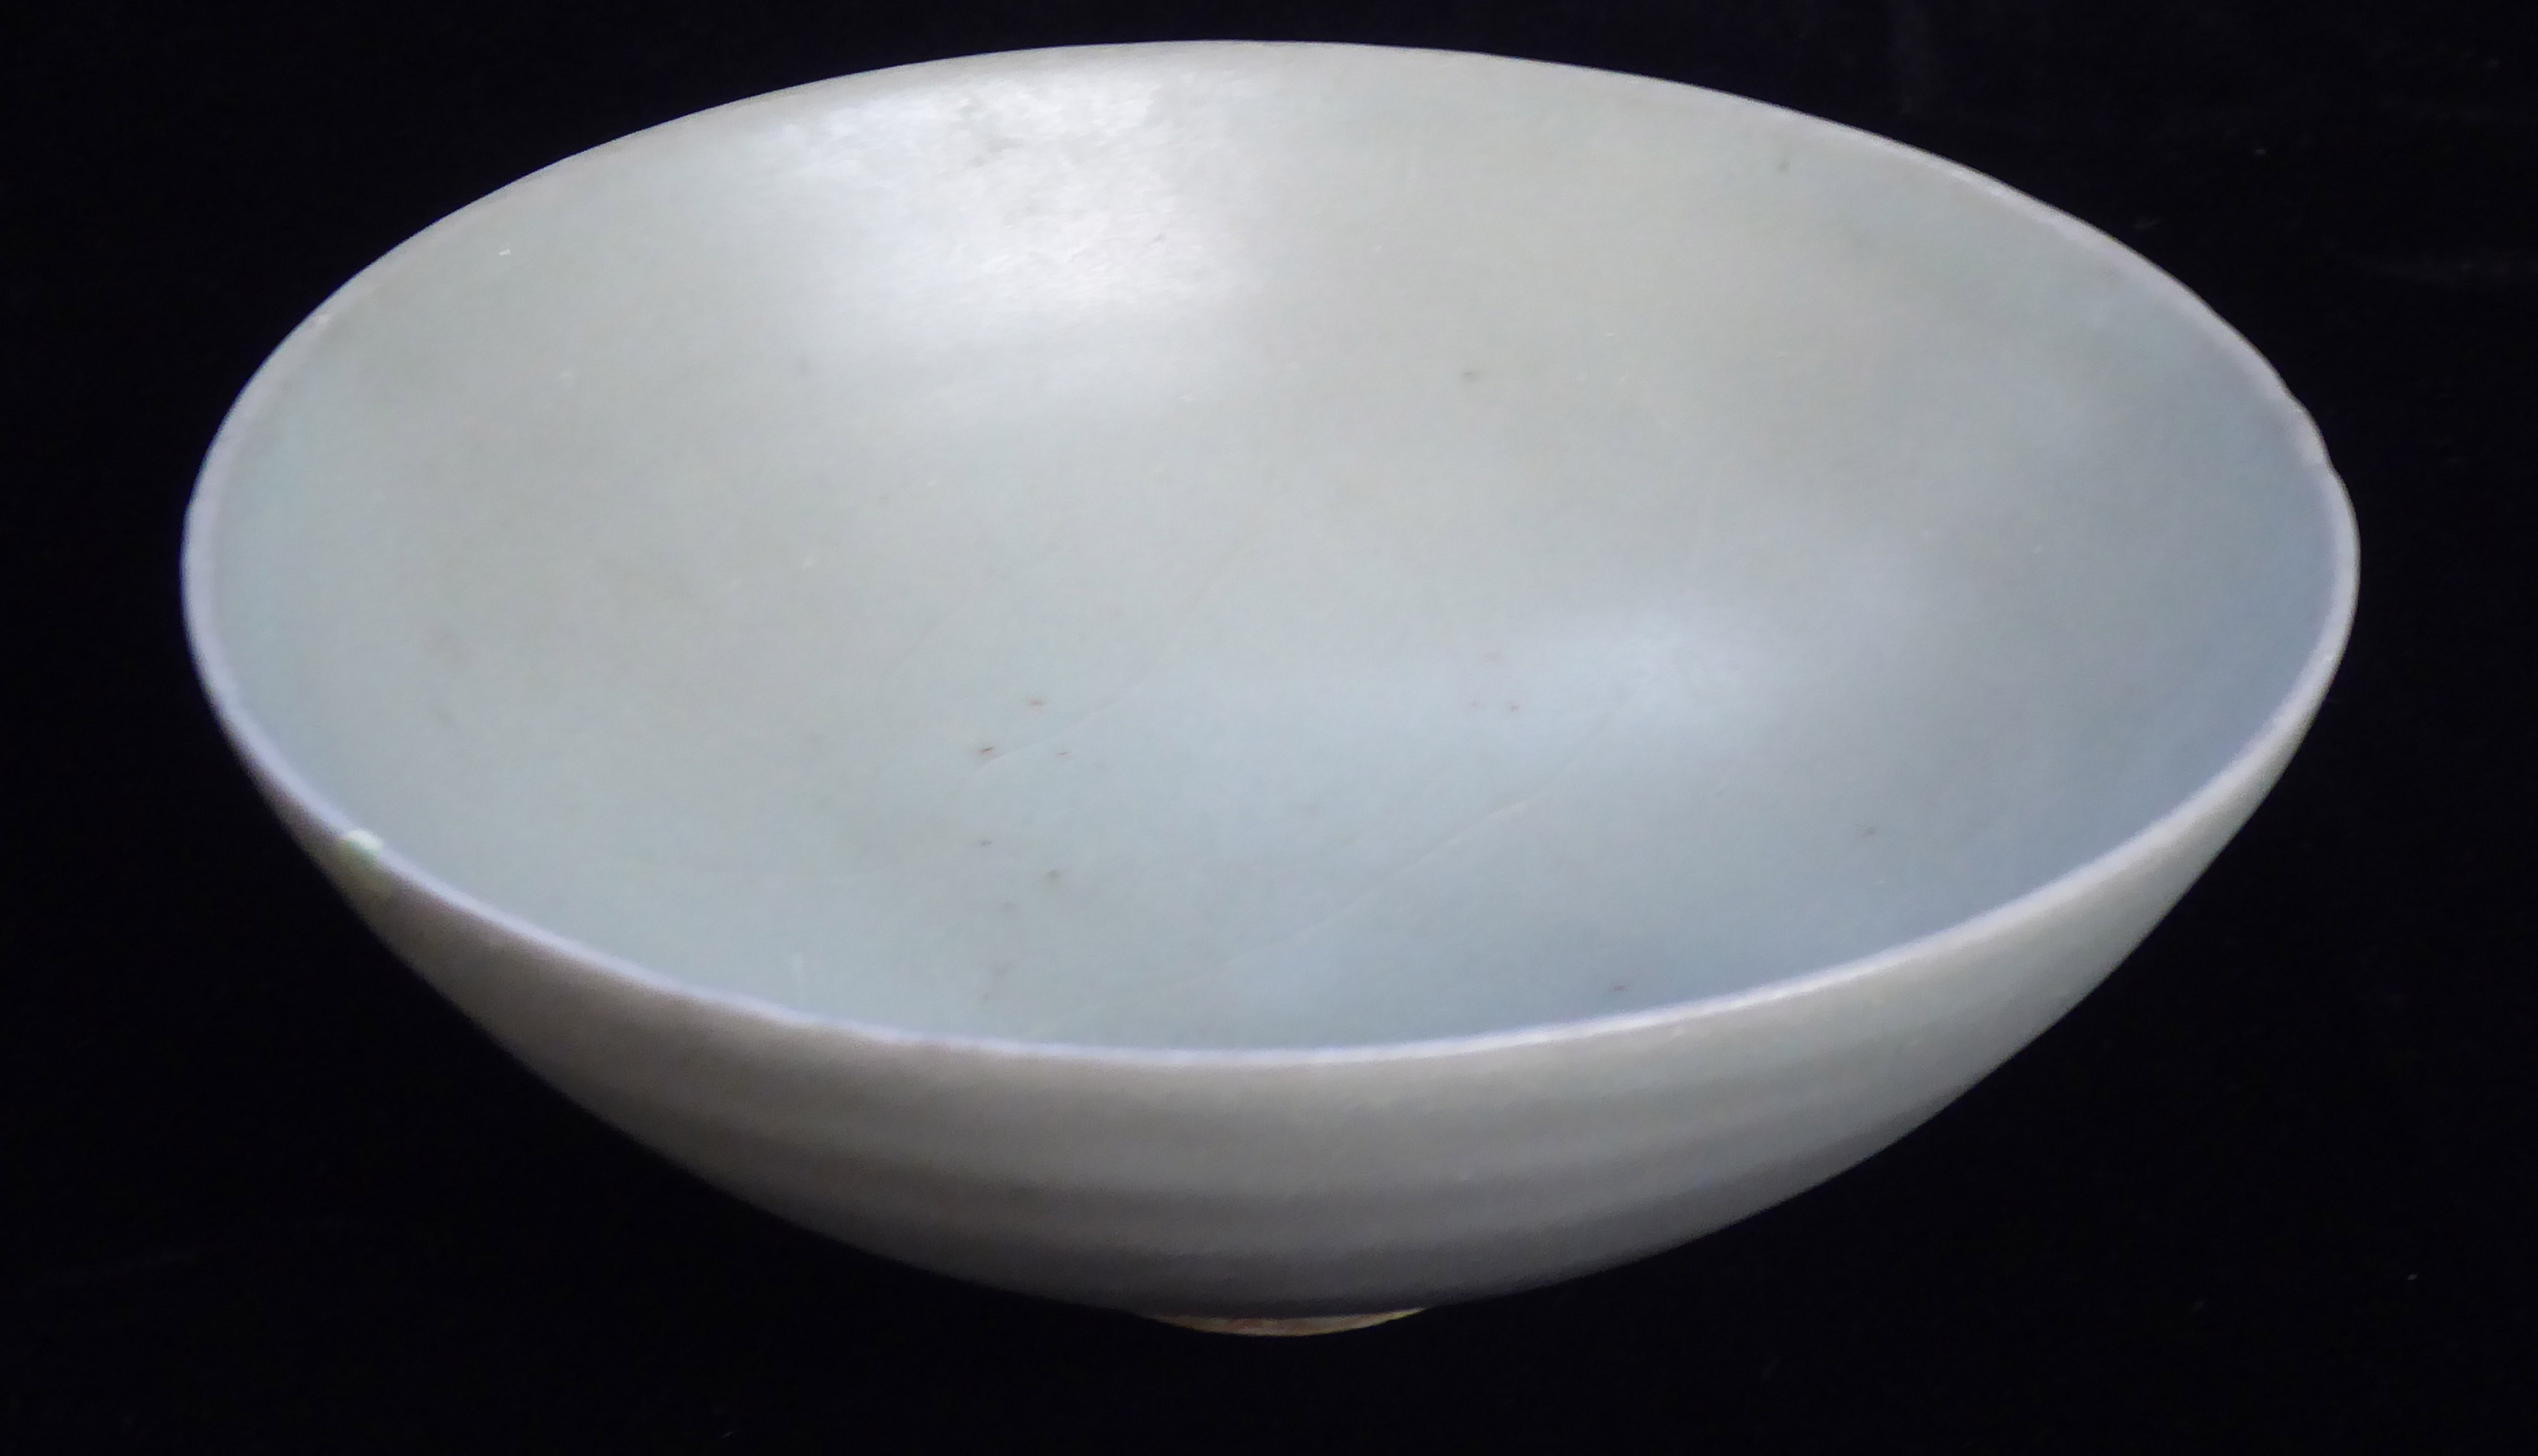 Lot 156 - A CHINESE YUAN DYNASTY LONGQUAN CELADON GLAZED POTTERY BOWL Of conical form of plain design. Bearing